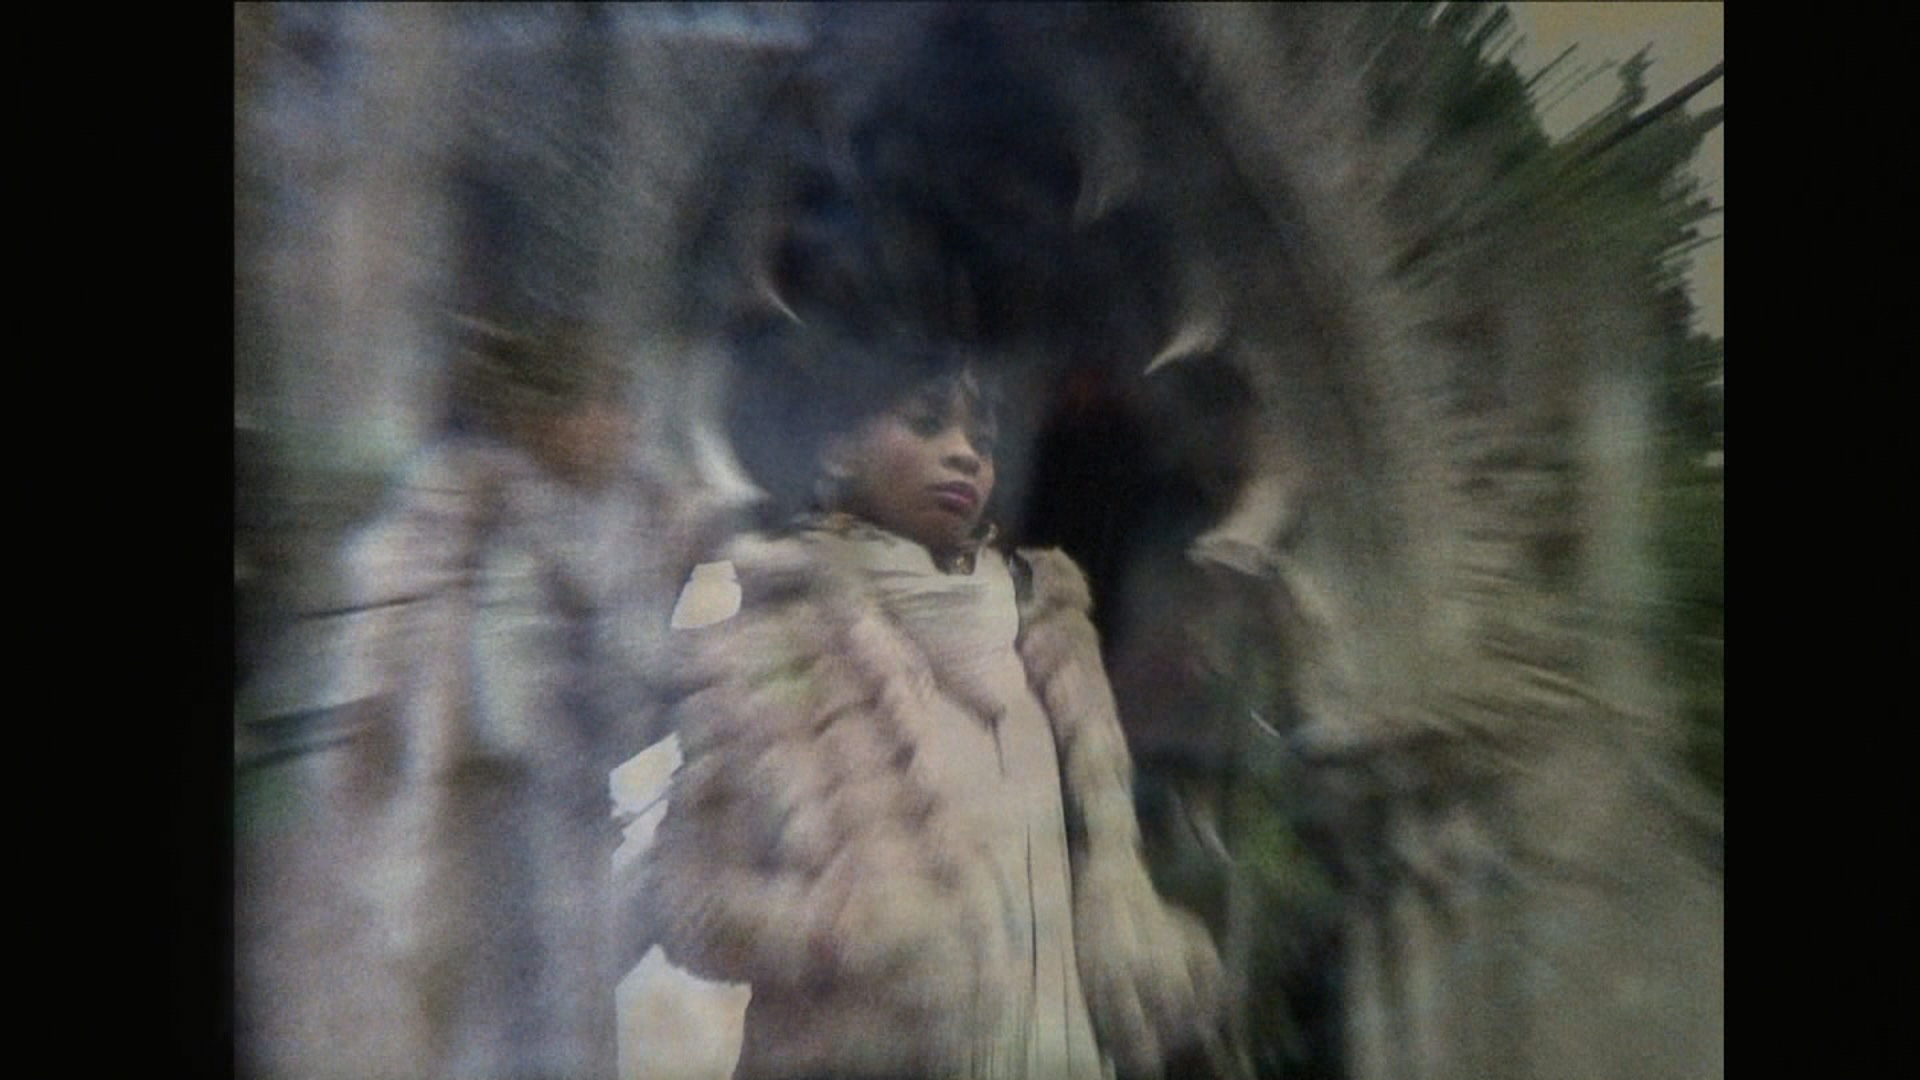 Rohan Quine, 'The Imagination Thief' - film 'ALAIA 34', still 11